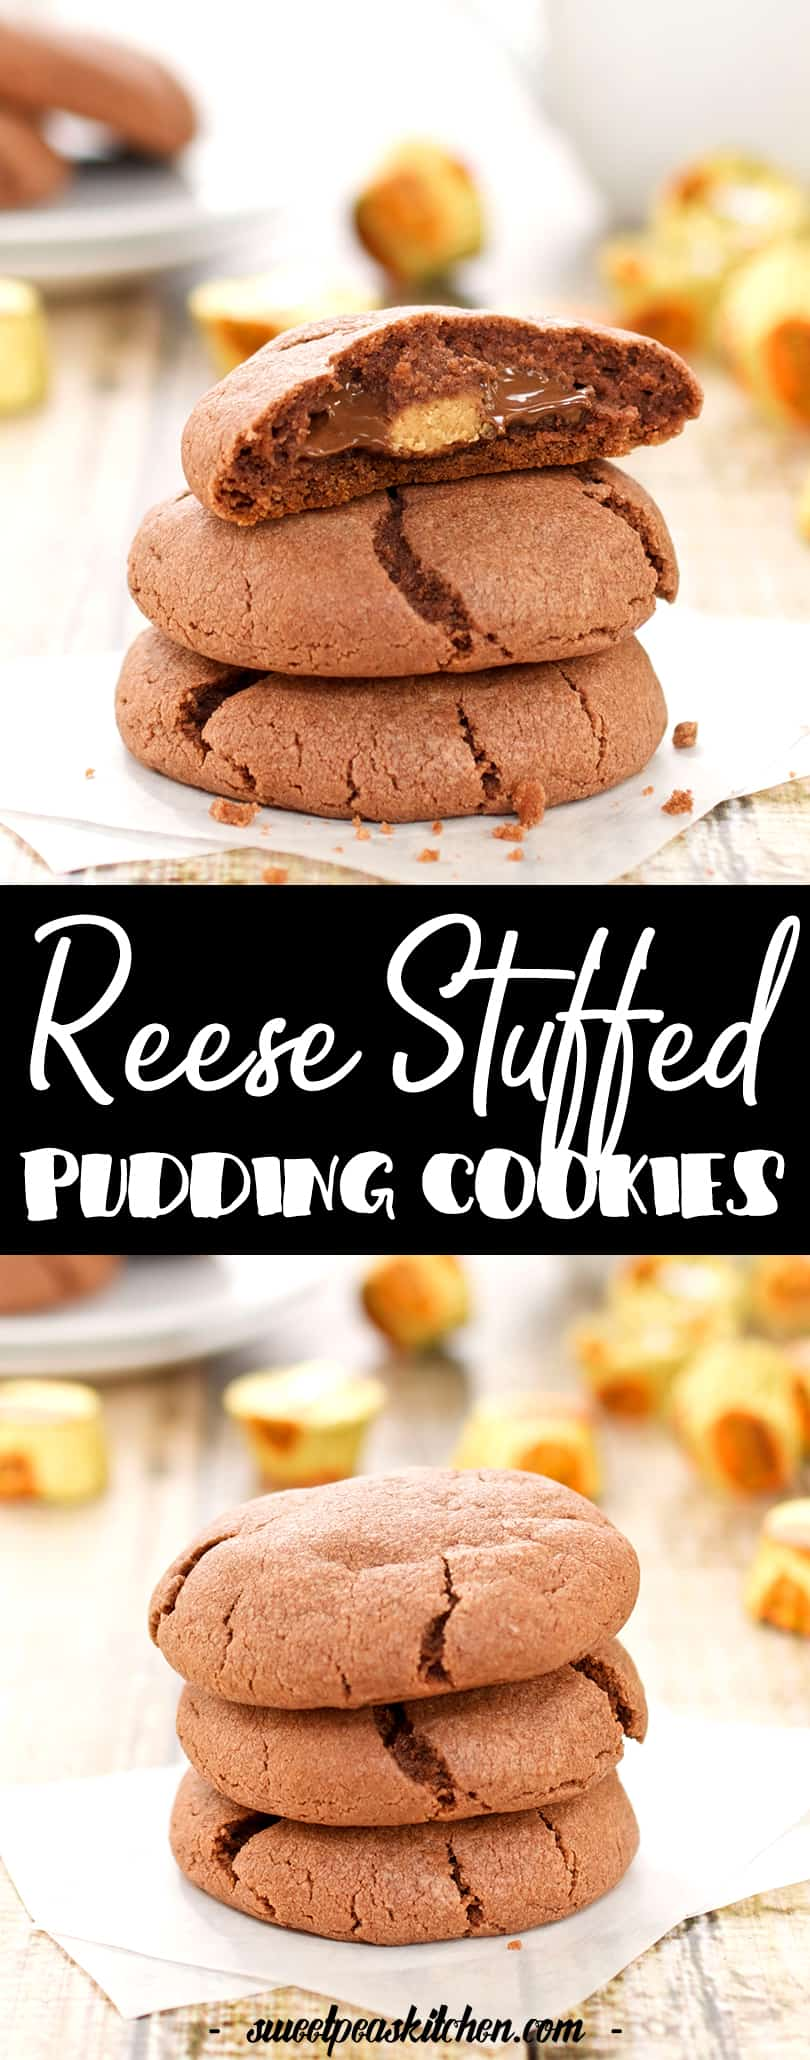 Reese Stuffed Pudding Cookies Recipe